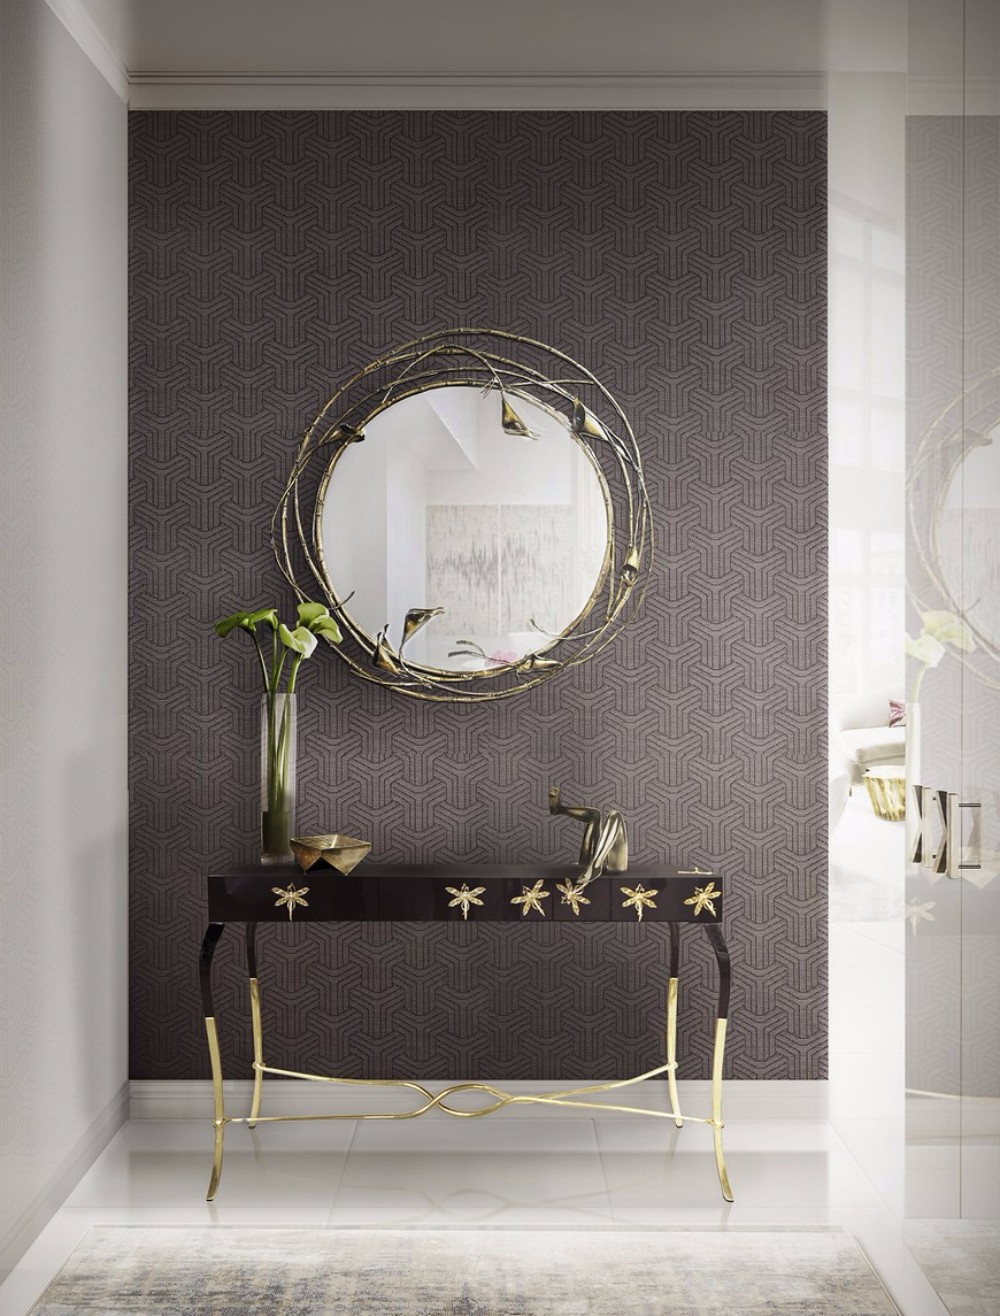 20 Exquisite Wall Mirror Designs For Your Living Room Regarding Most Recent Wall Mirrors For Living Room (View 6 of 20)